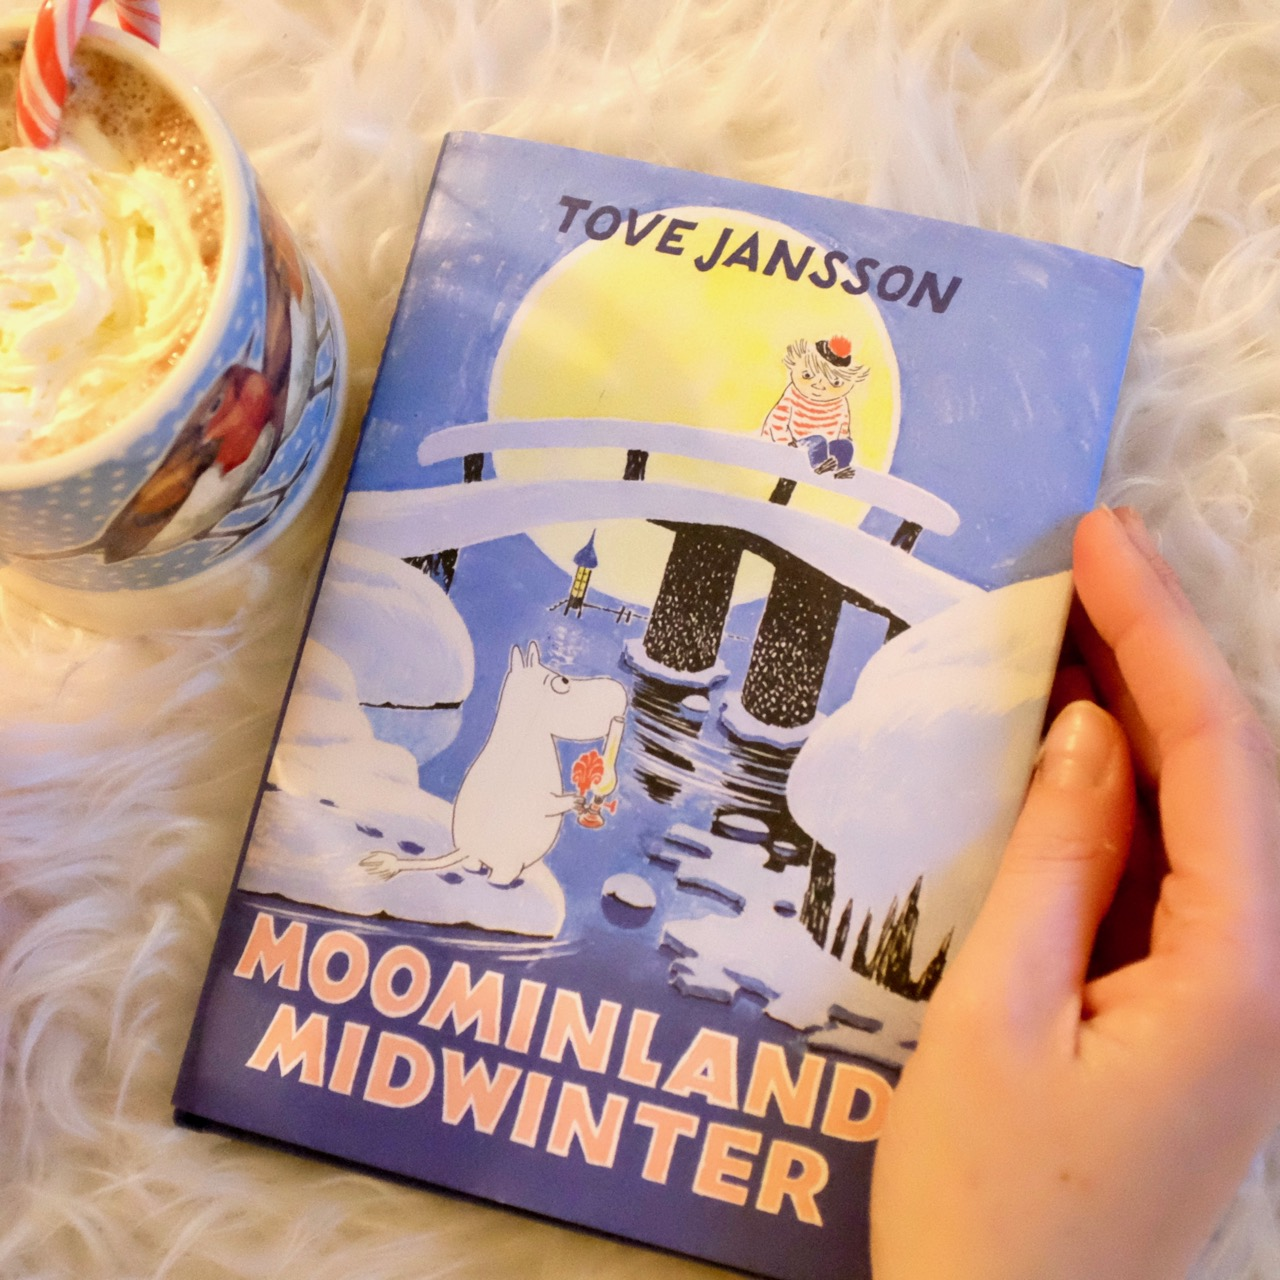 Moomin Midwinter